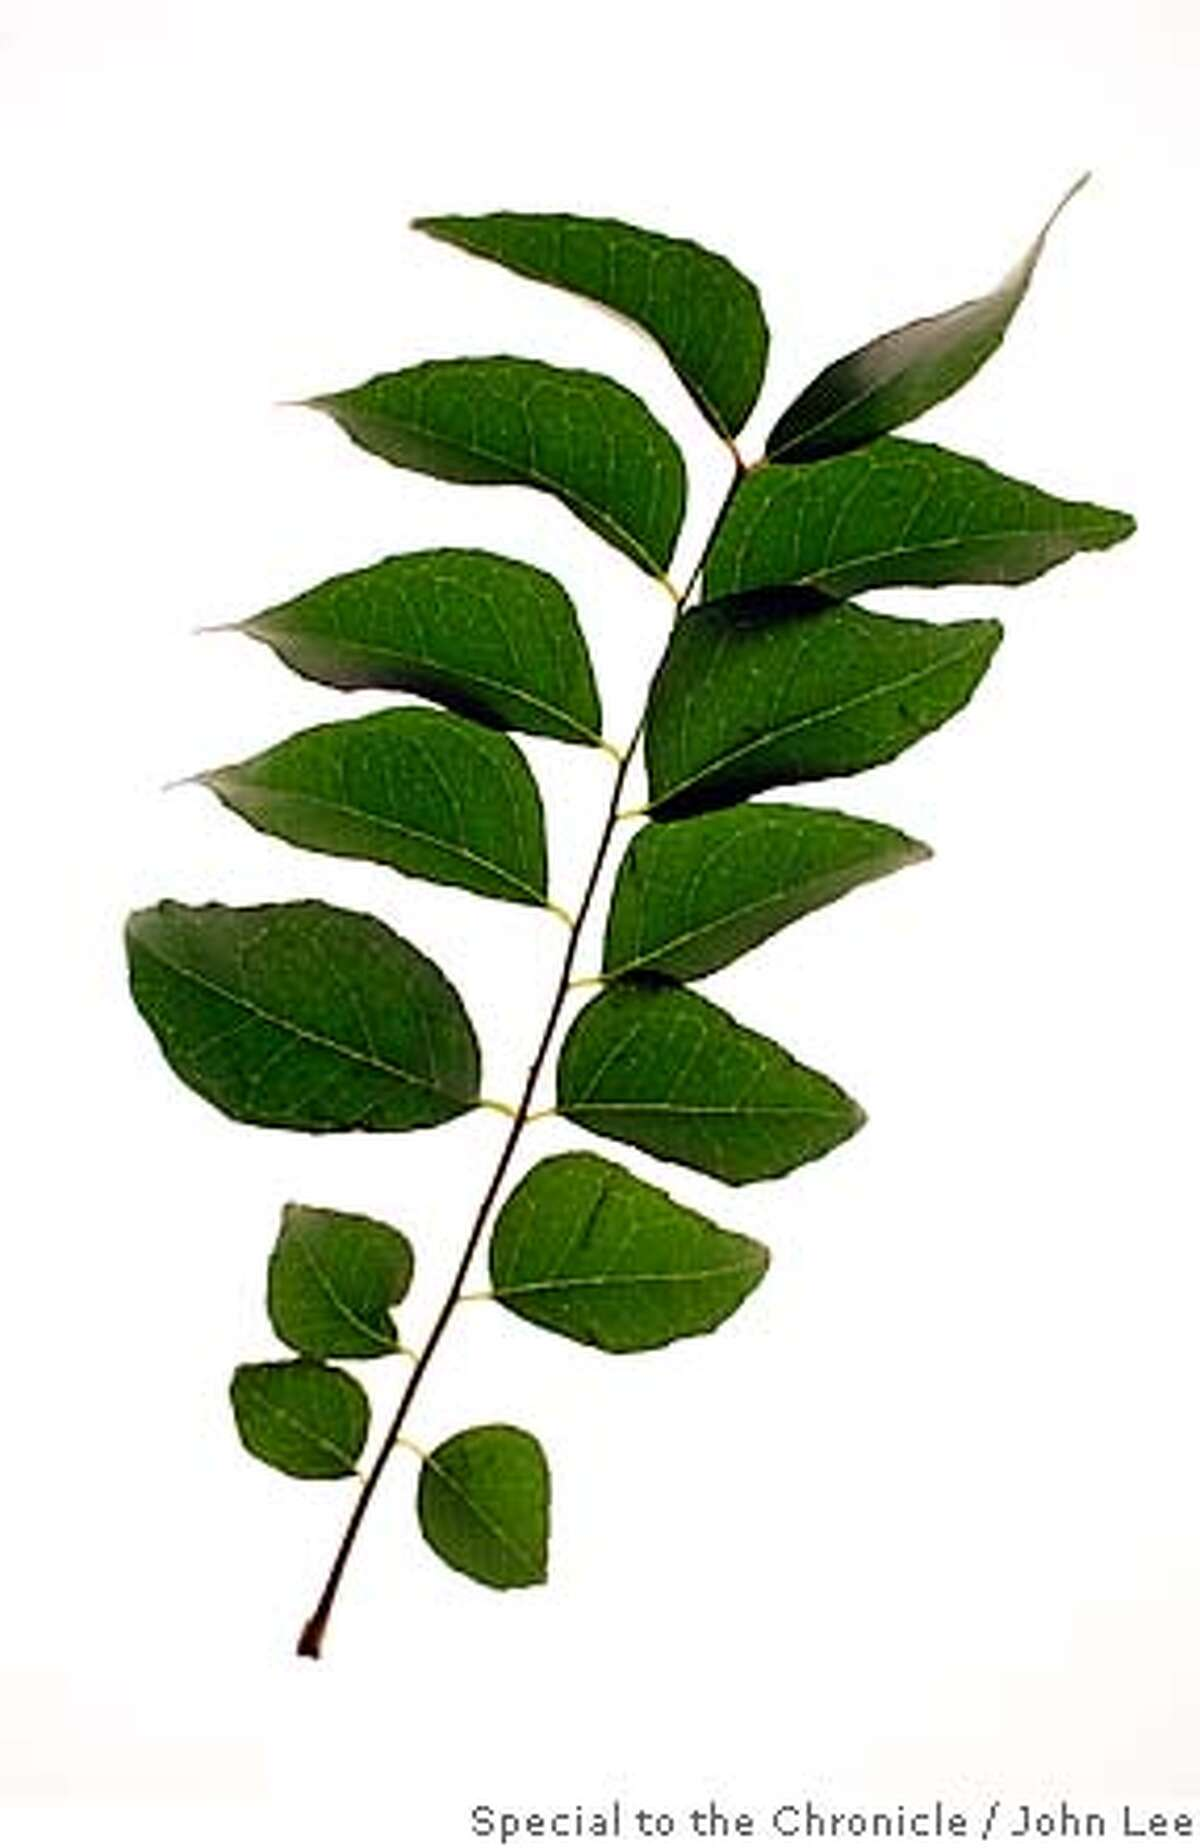 CURRYLEAVES11_02JOHNLEE.JPG Curry leaves. By JOHN LEE/SPECIAL TO THE CHRONICLE